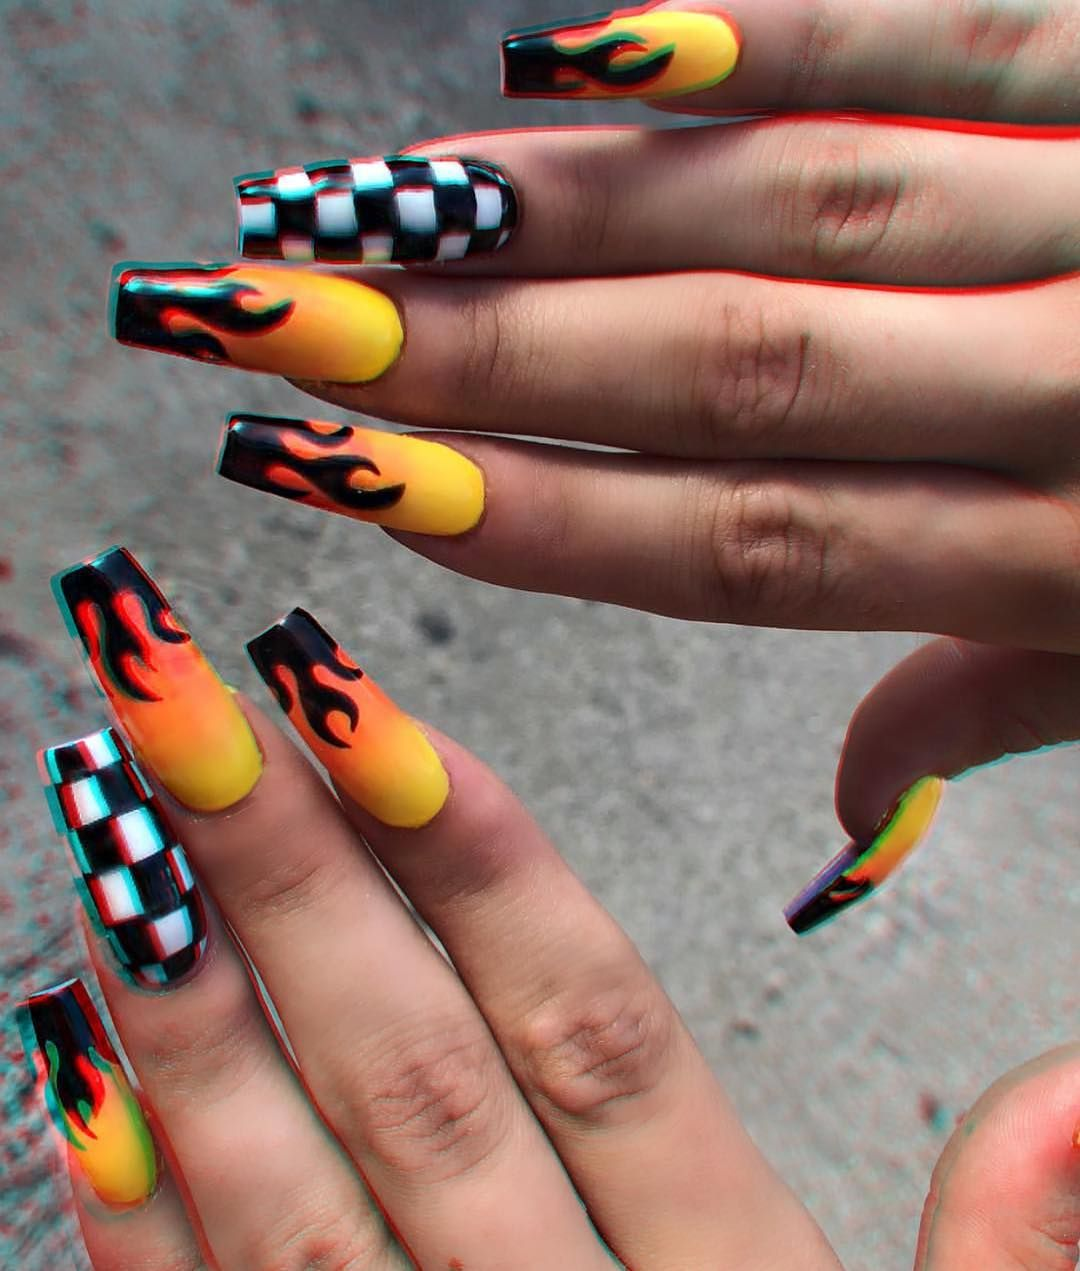 Badgal Blvd On Instagram Nail Drip Yes Or No Tag Someone That Would Rock These In Checkered Nails Coffin Nails Designs Fire Nails